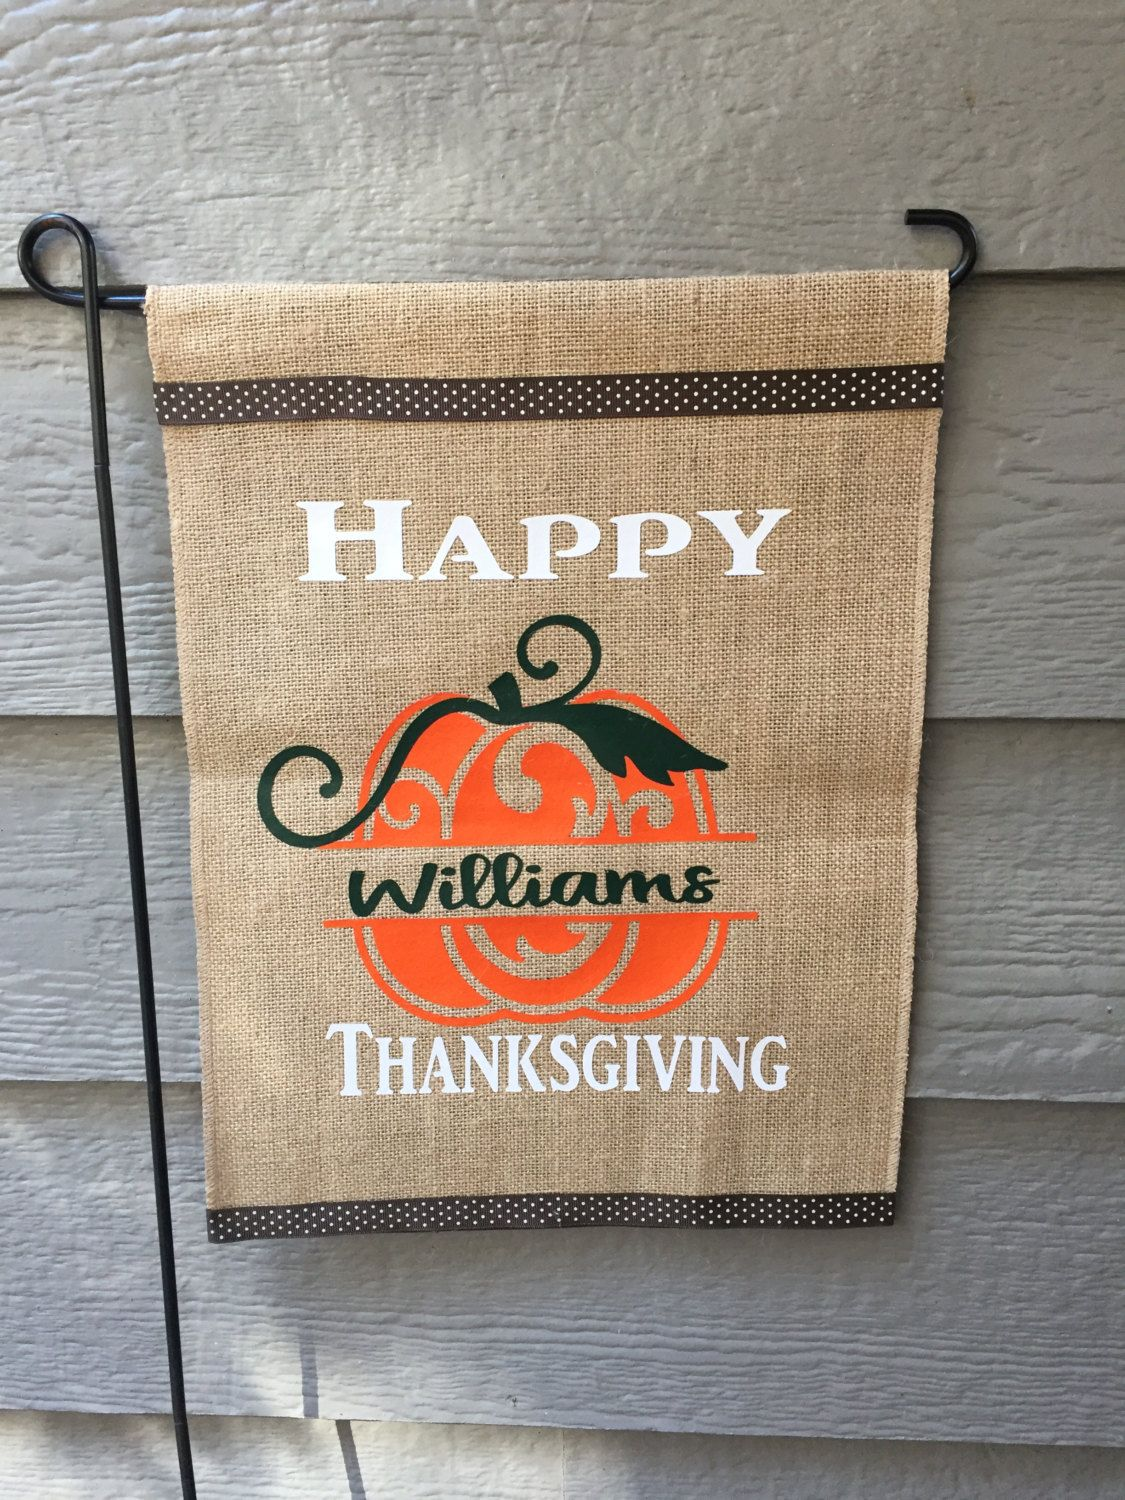 Gobble Turkey House Flag Decorative Thanksgiving Flag From Our House To Your Home Houseflags Com Thanksgiving House Flag Thanksgiving Flag House Flags